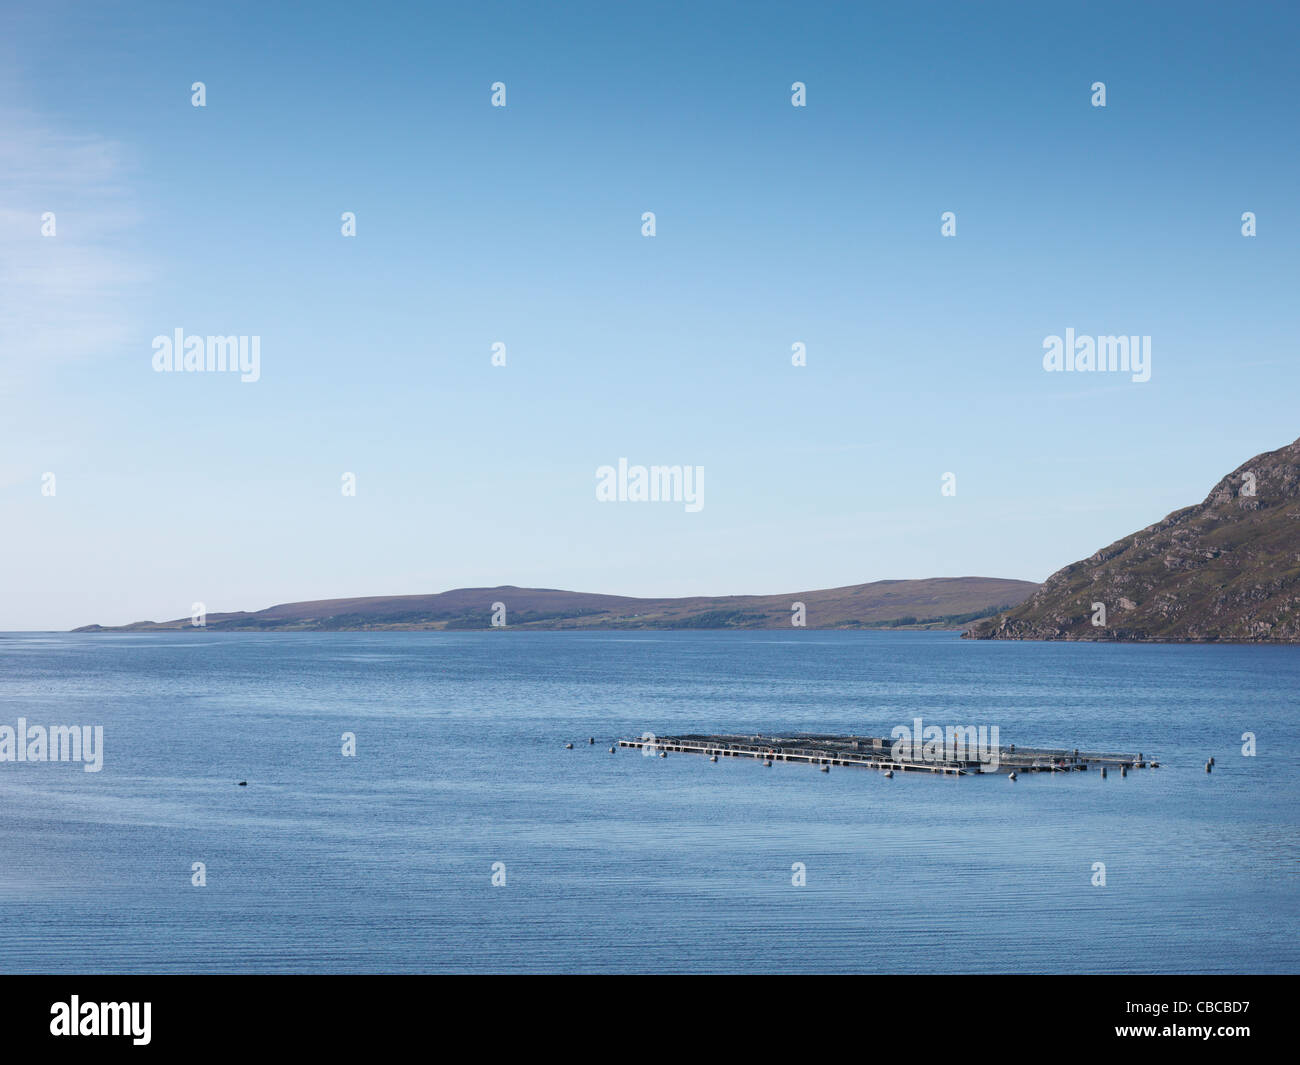 Aerial view of fish farm - Stock Image